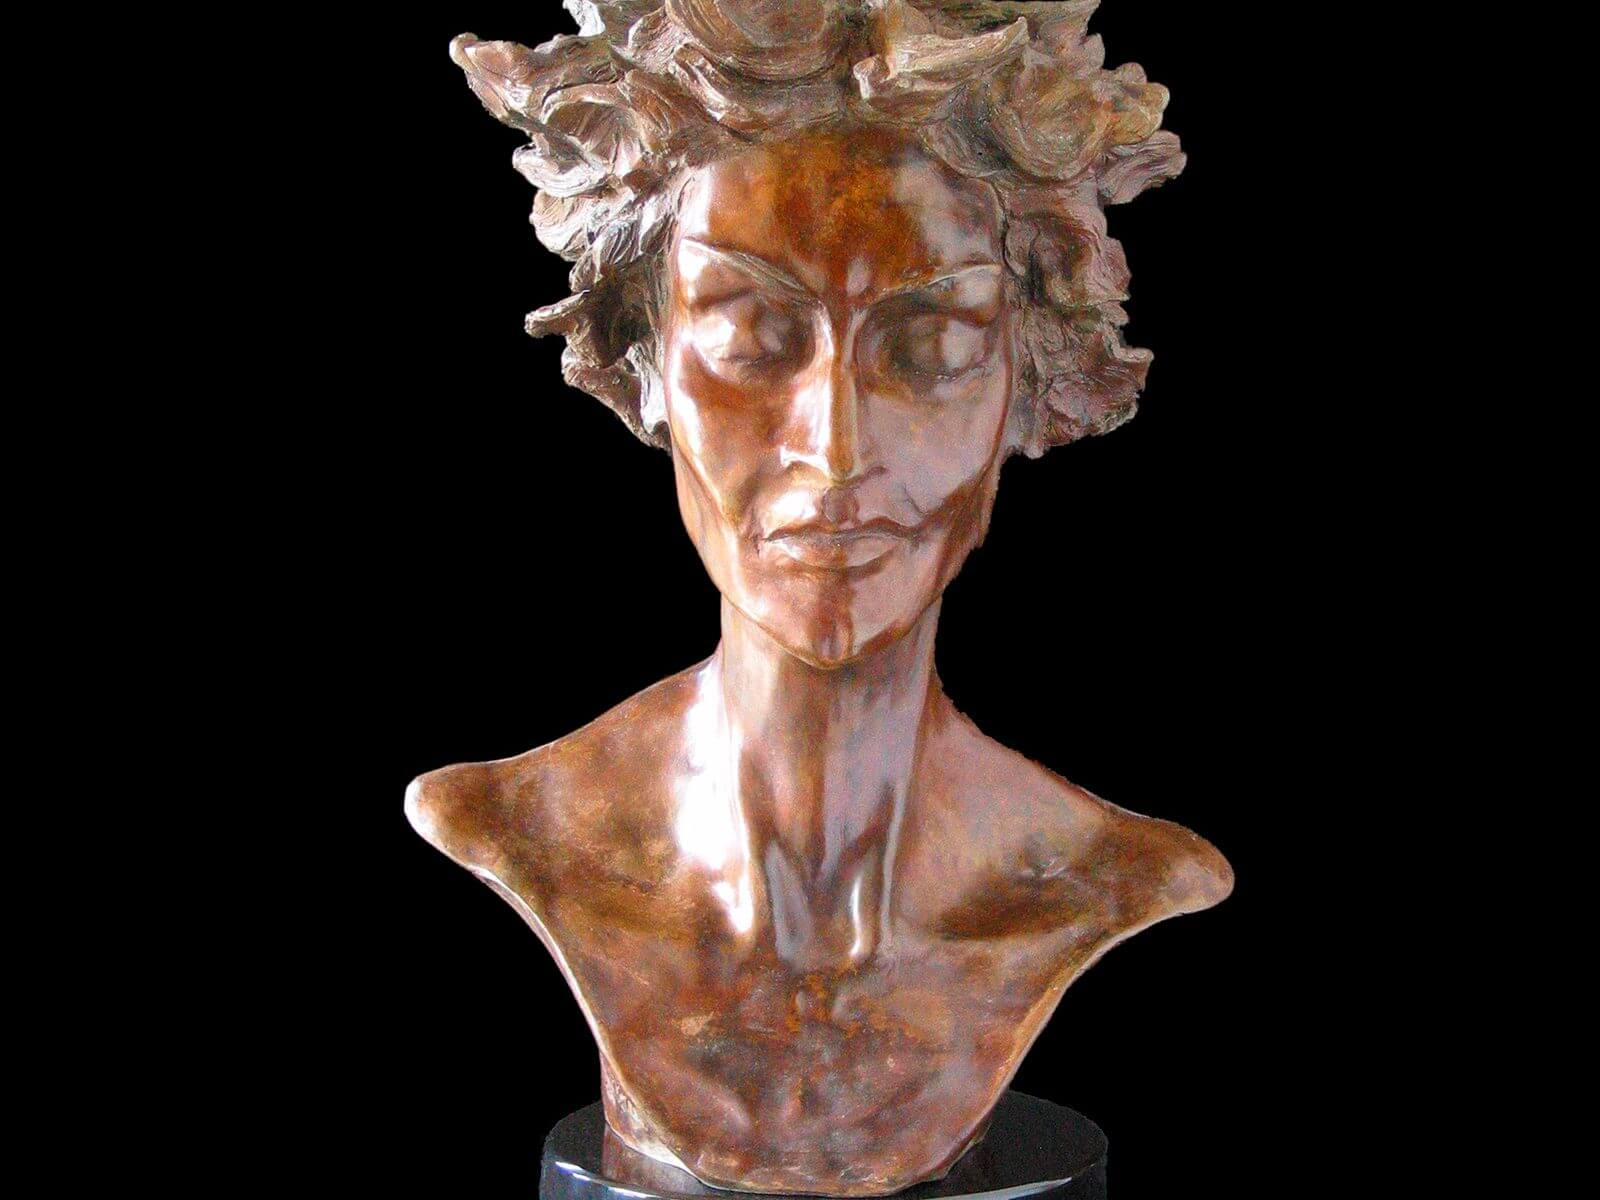 Primavera a female bust figurative bronze sculpture by Andrew DeVries